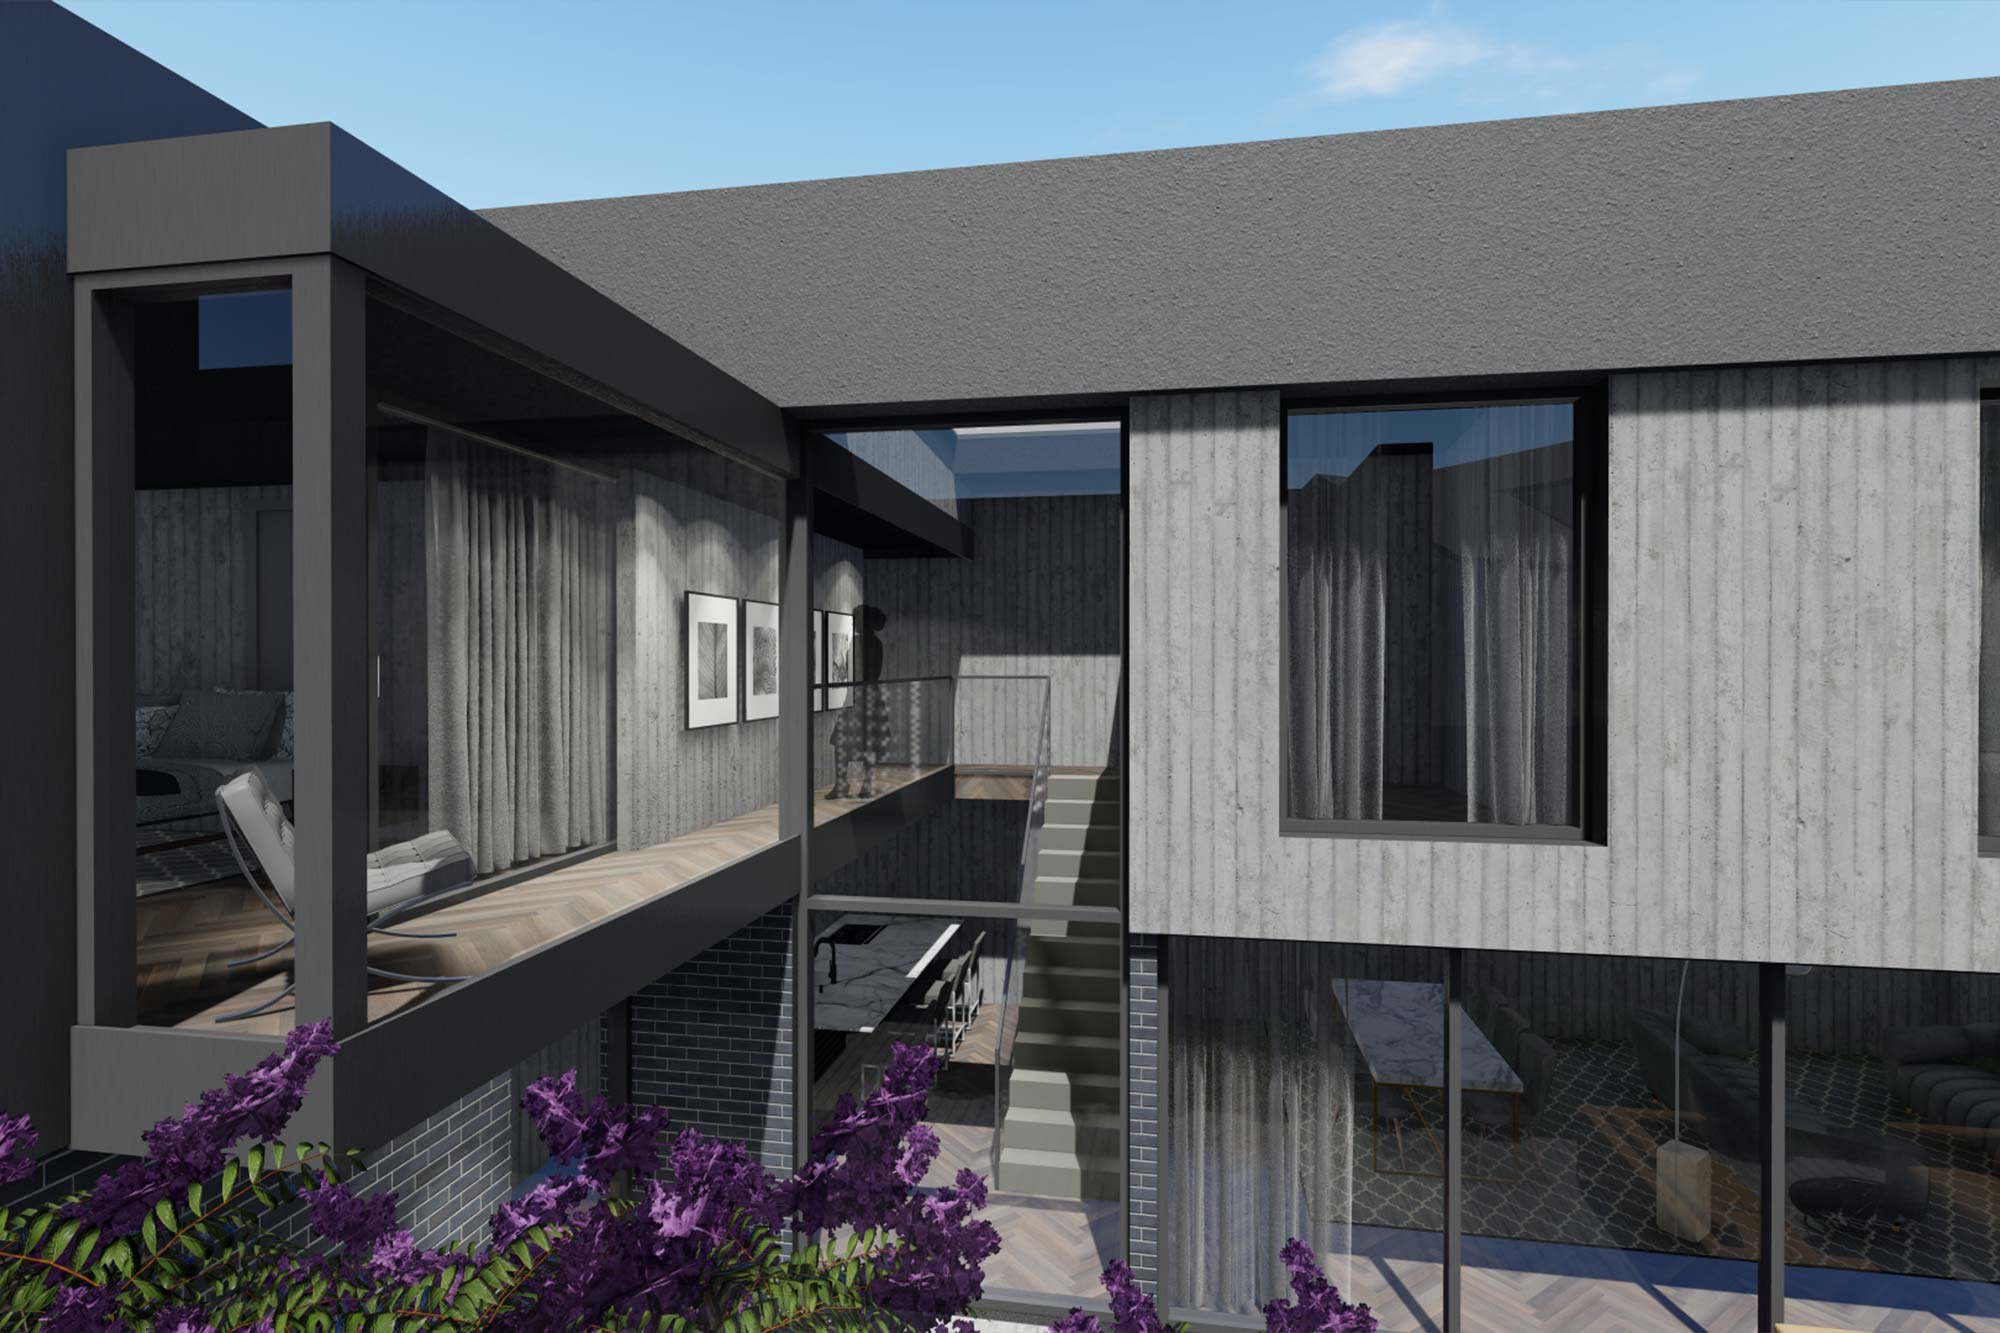 Contemporary residential development in Rossendale, Lancashire